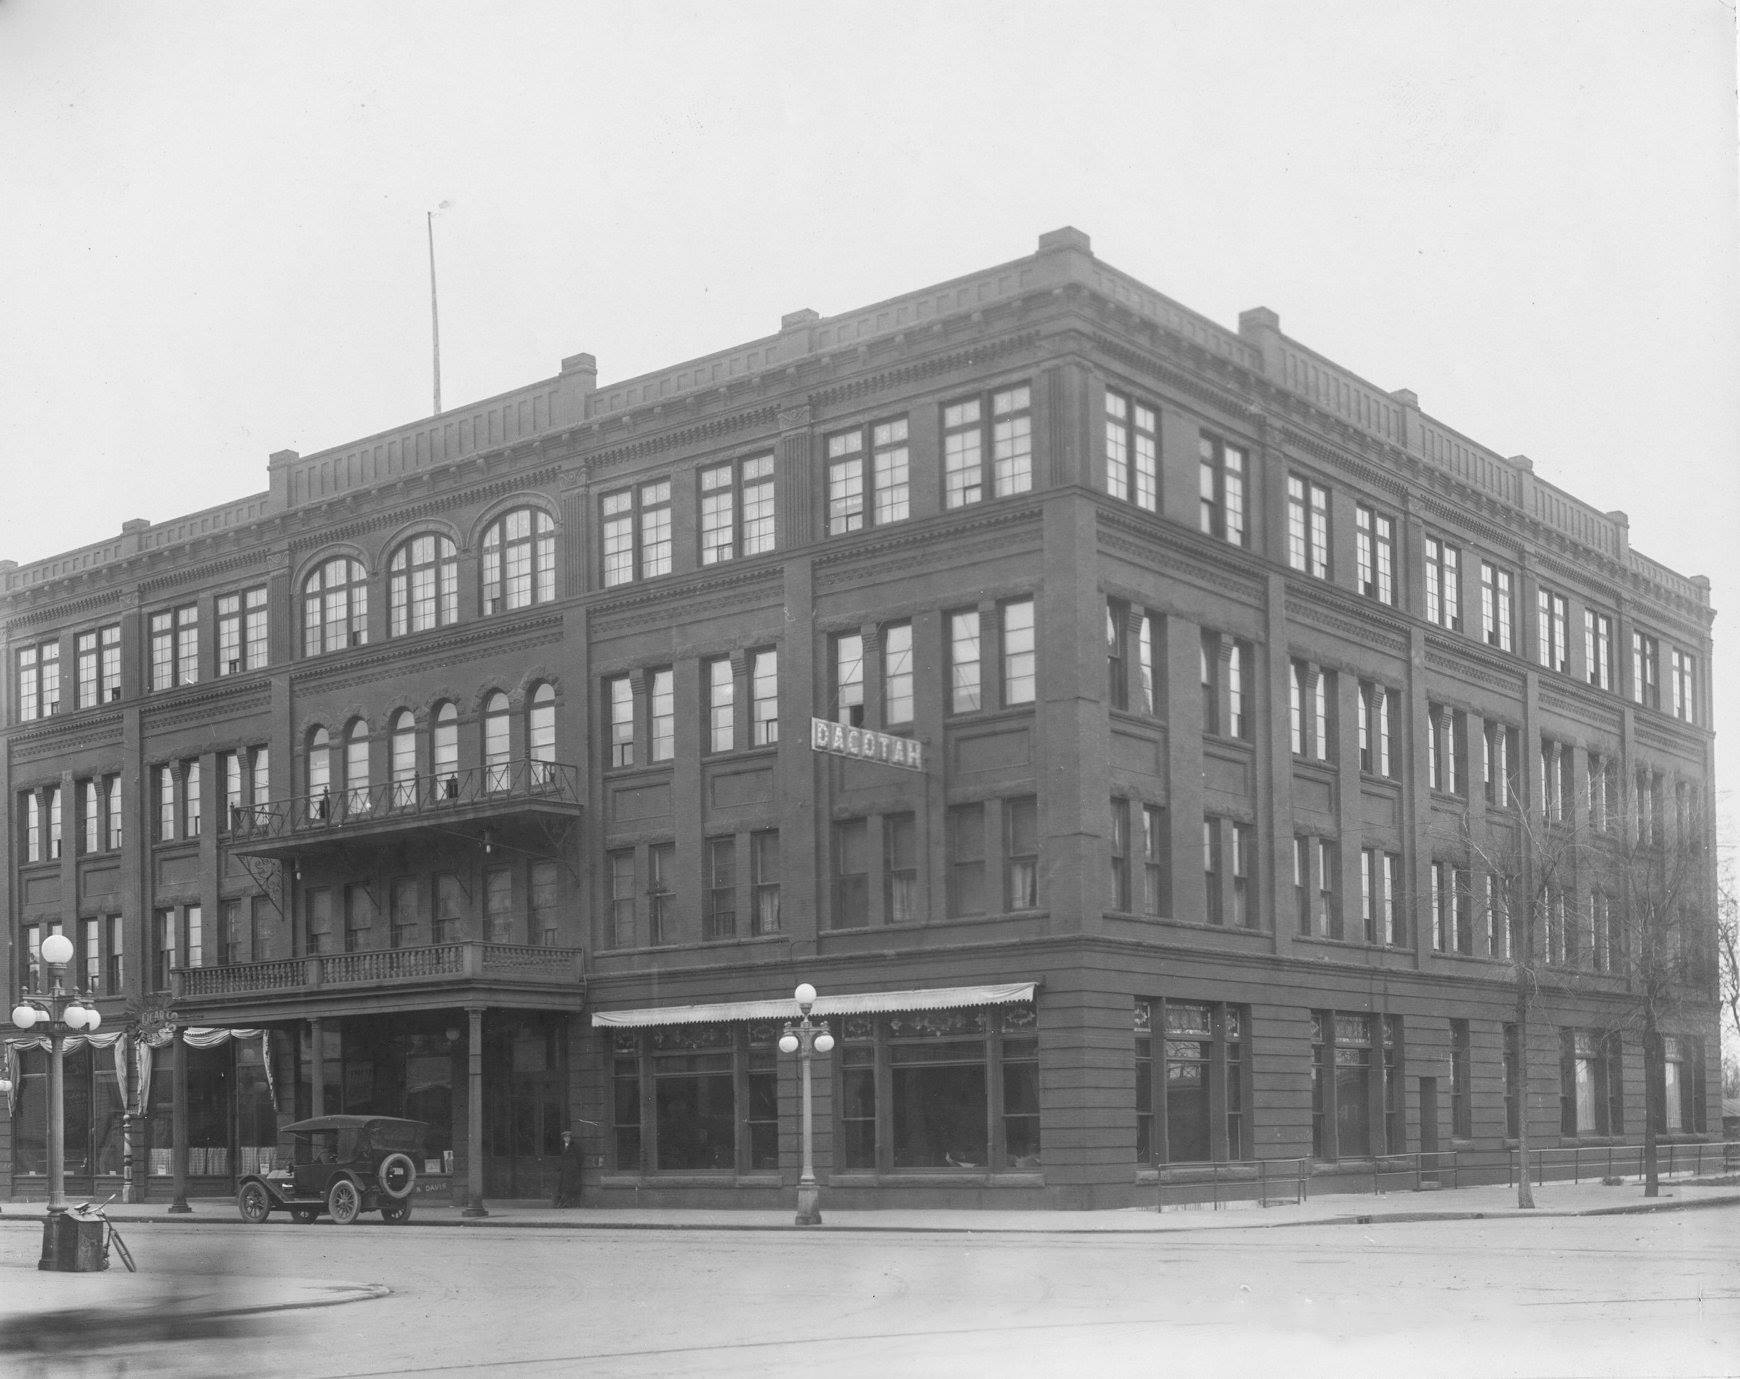 The Dacotah Hotel, corner of 1st Ave N and 3rd N St